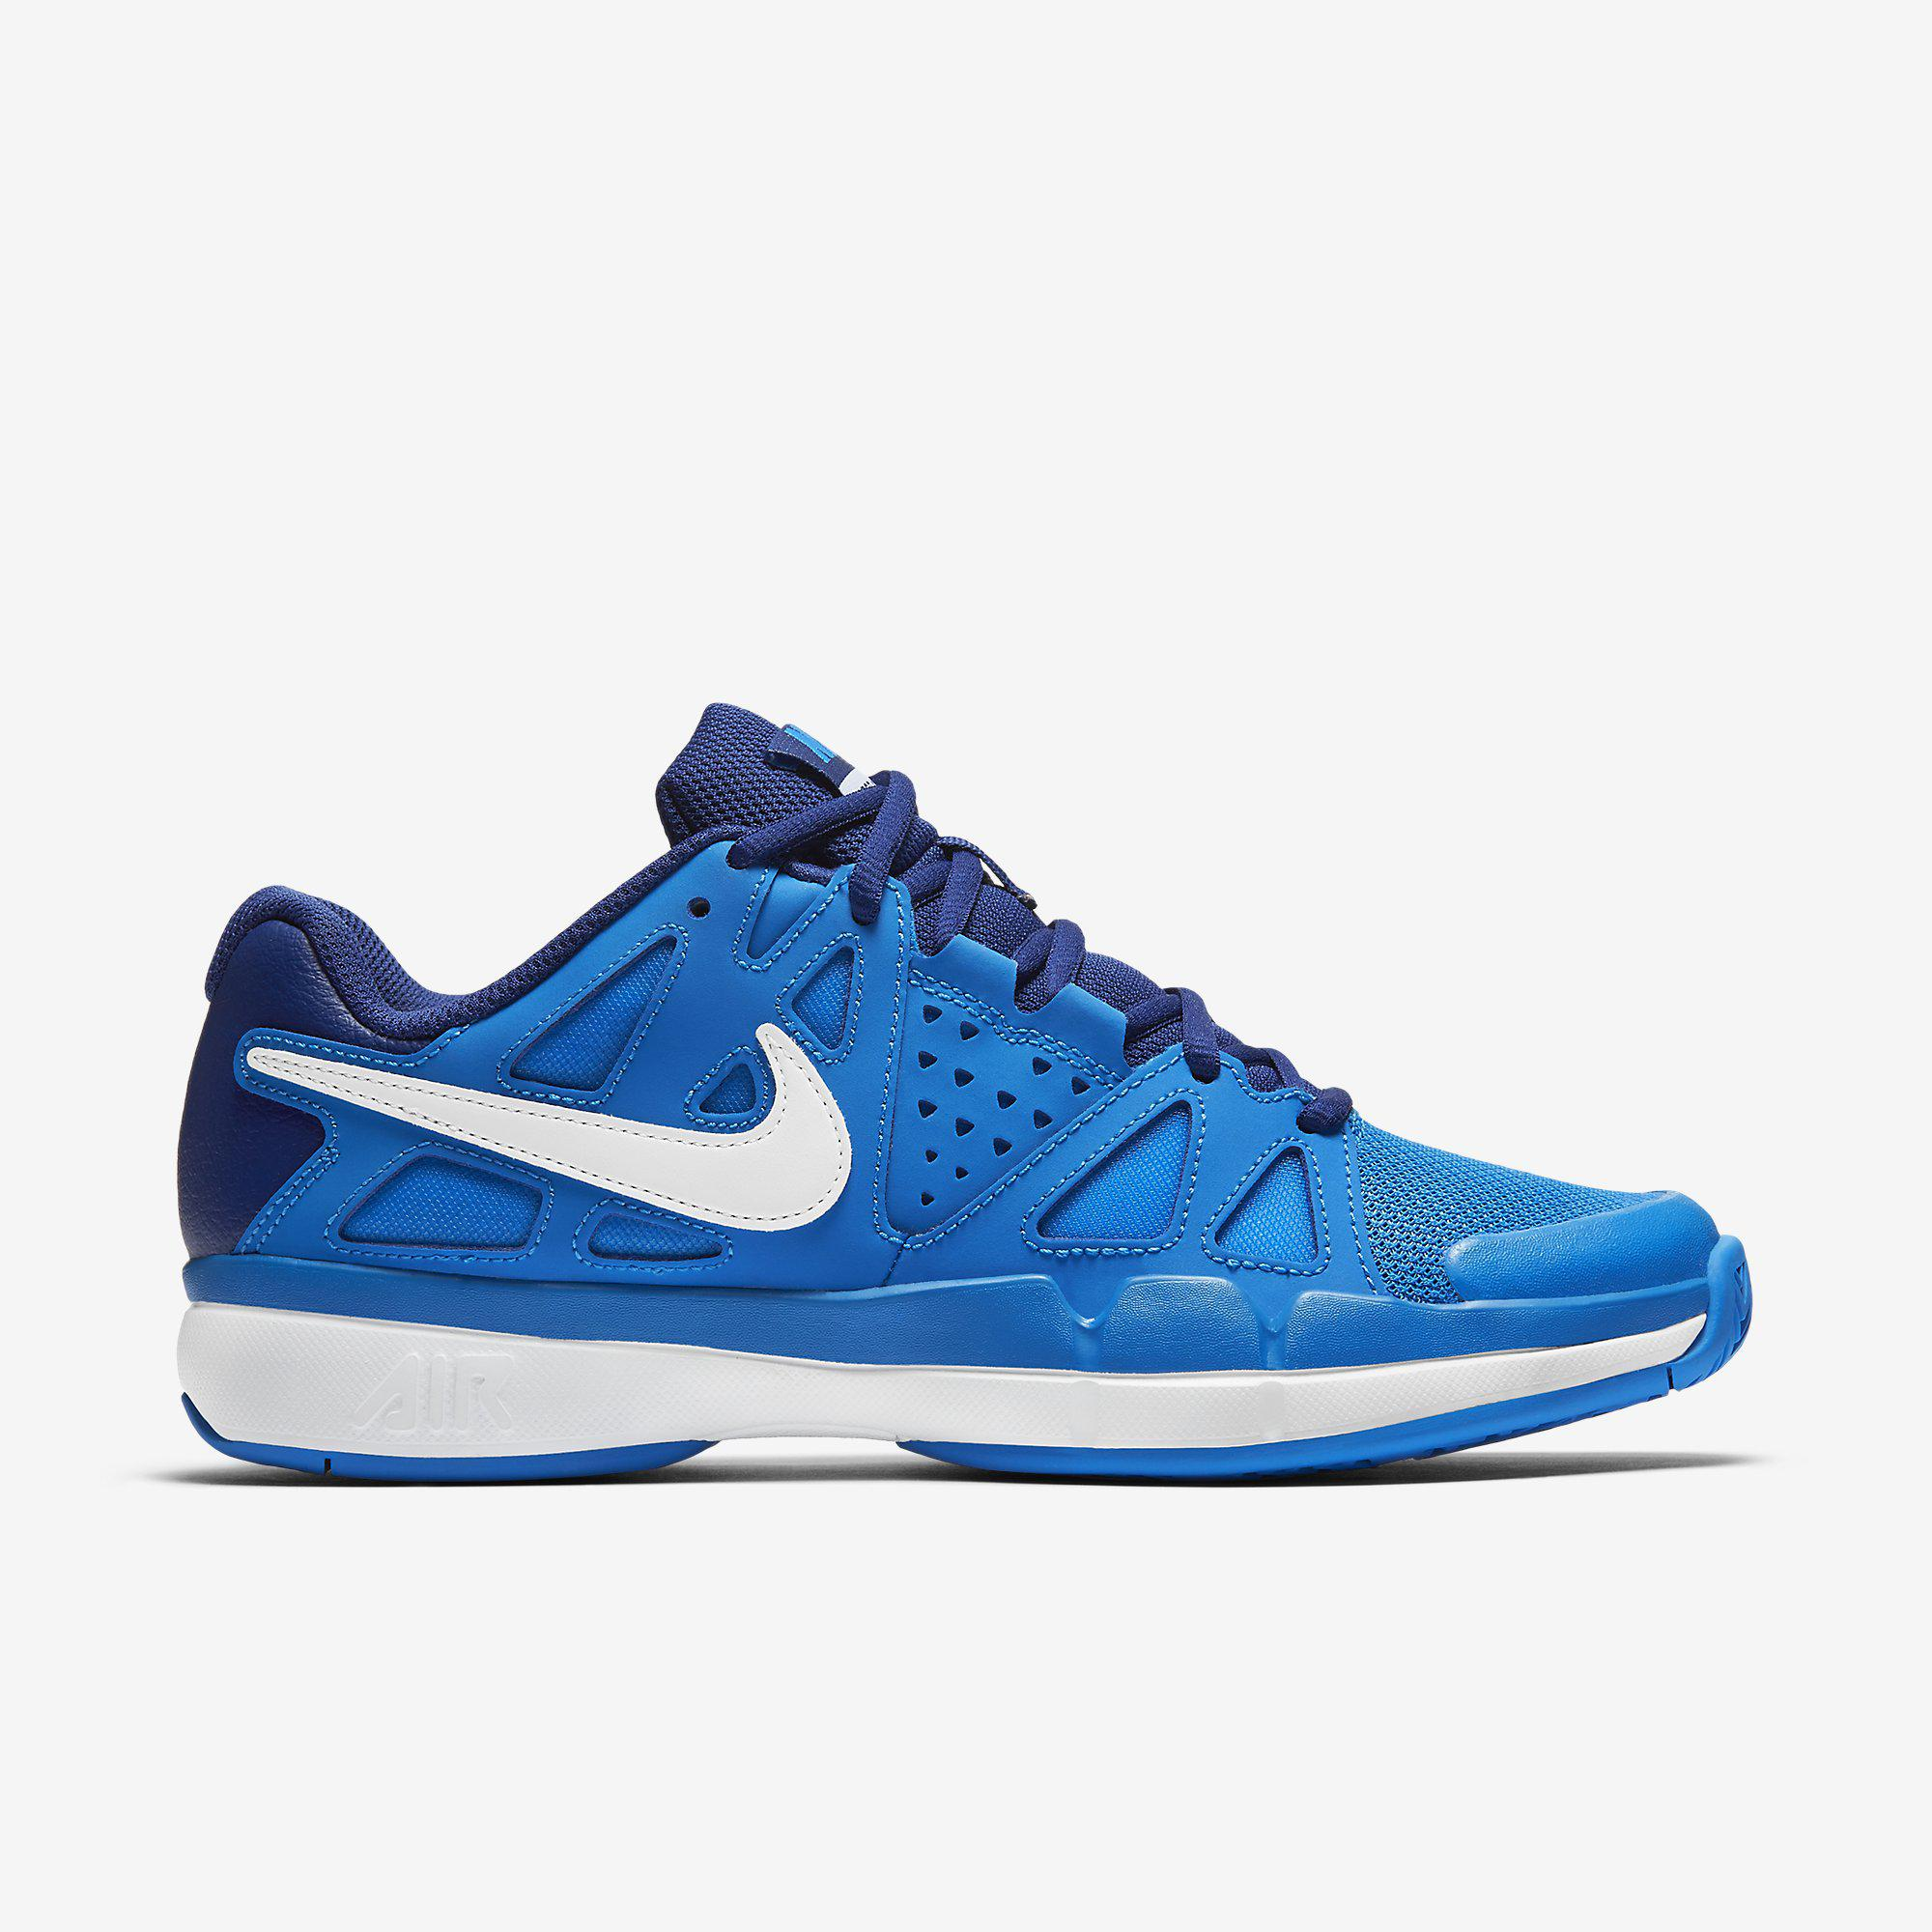 Nike White Blue Tennis Shoe